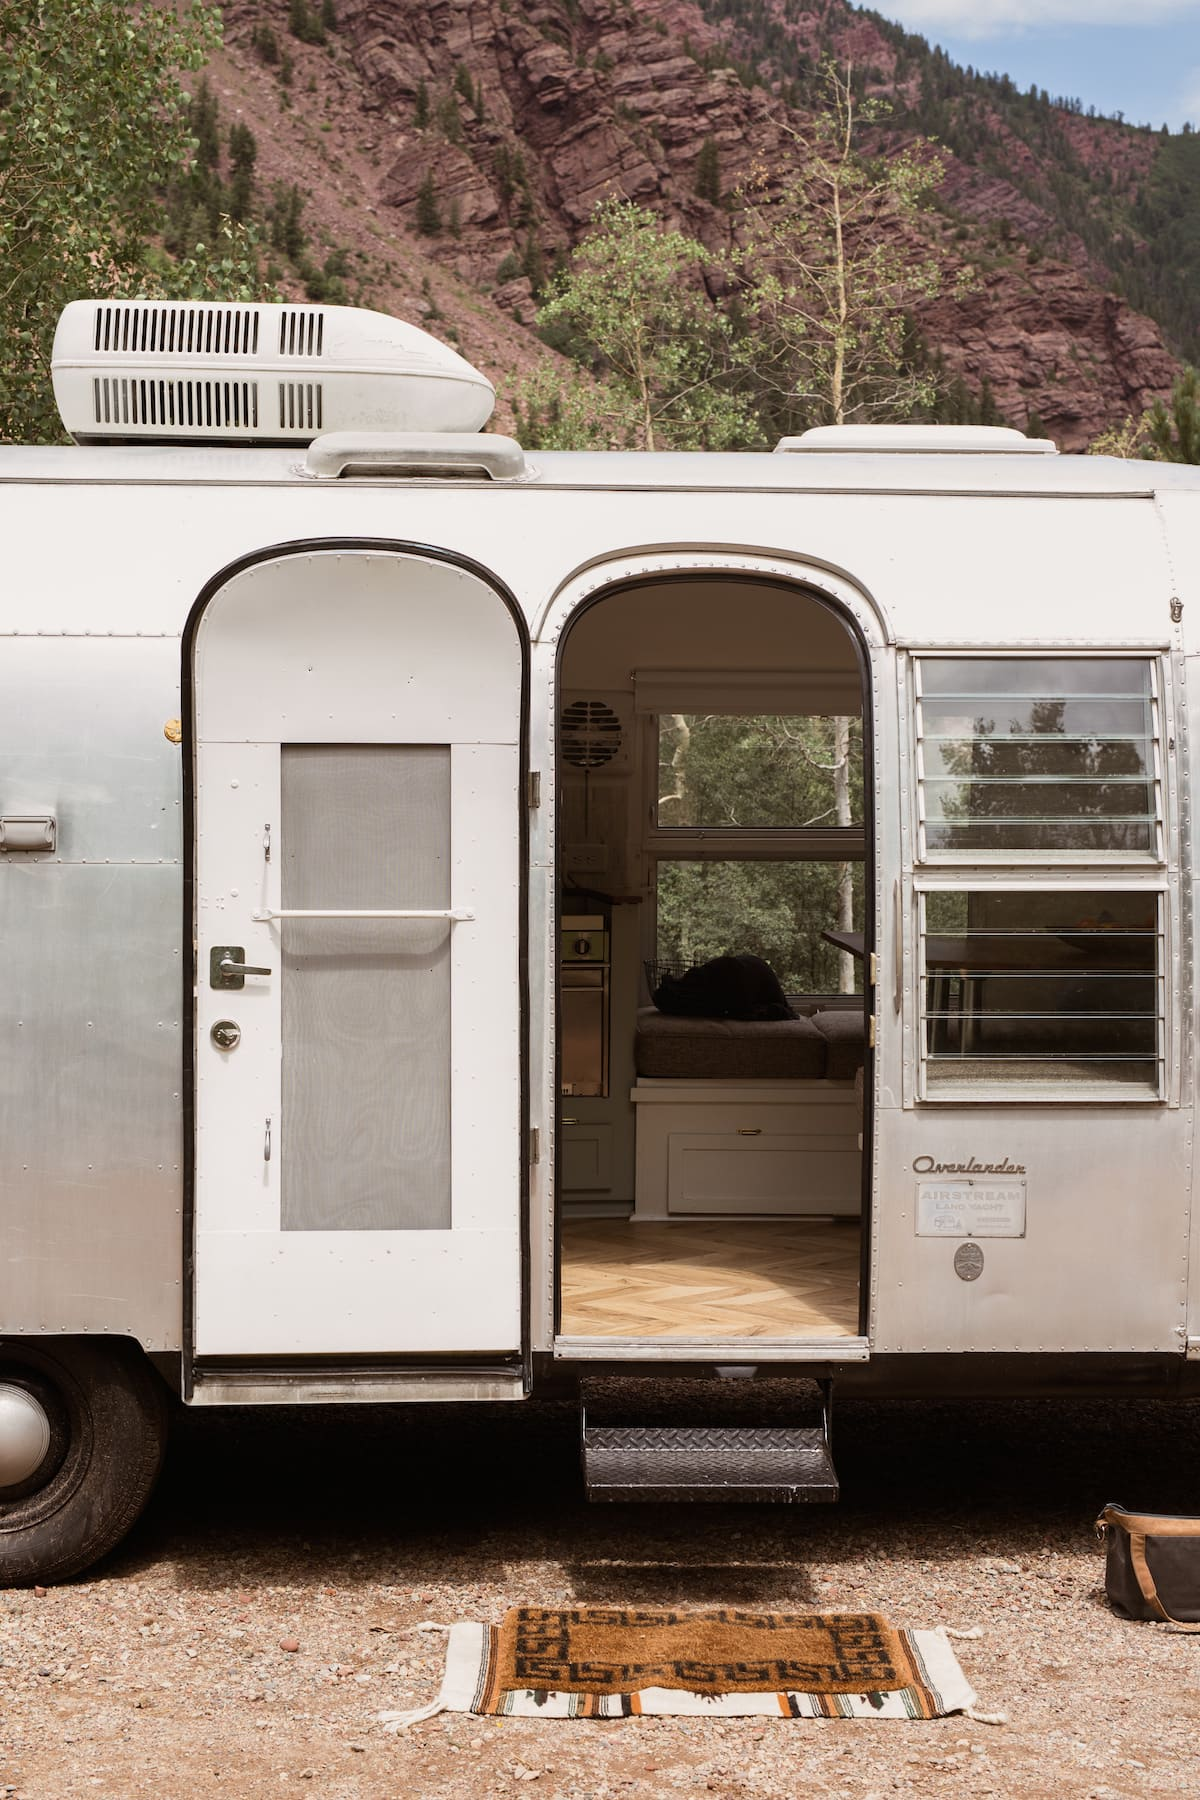 marjorie airstream 16 - This renovated Airstream trailer is all floral and boho-chic charm